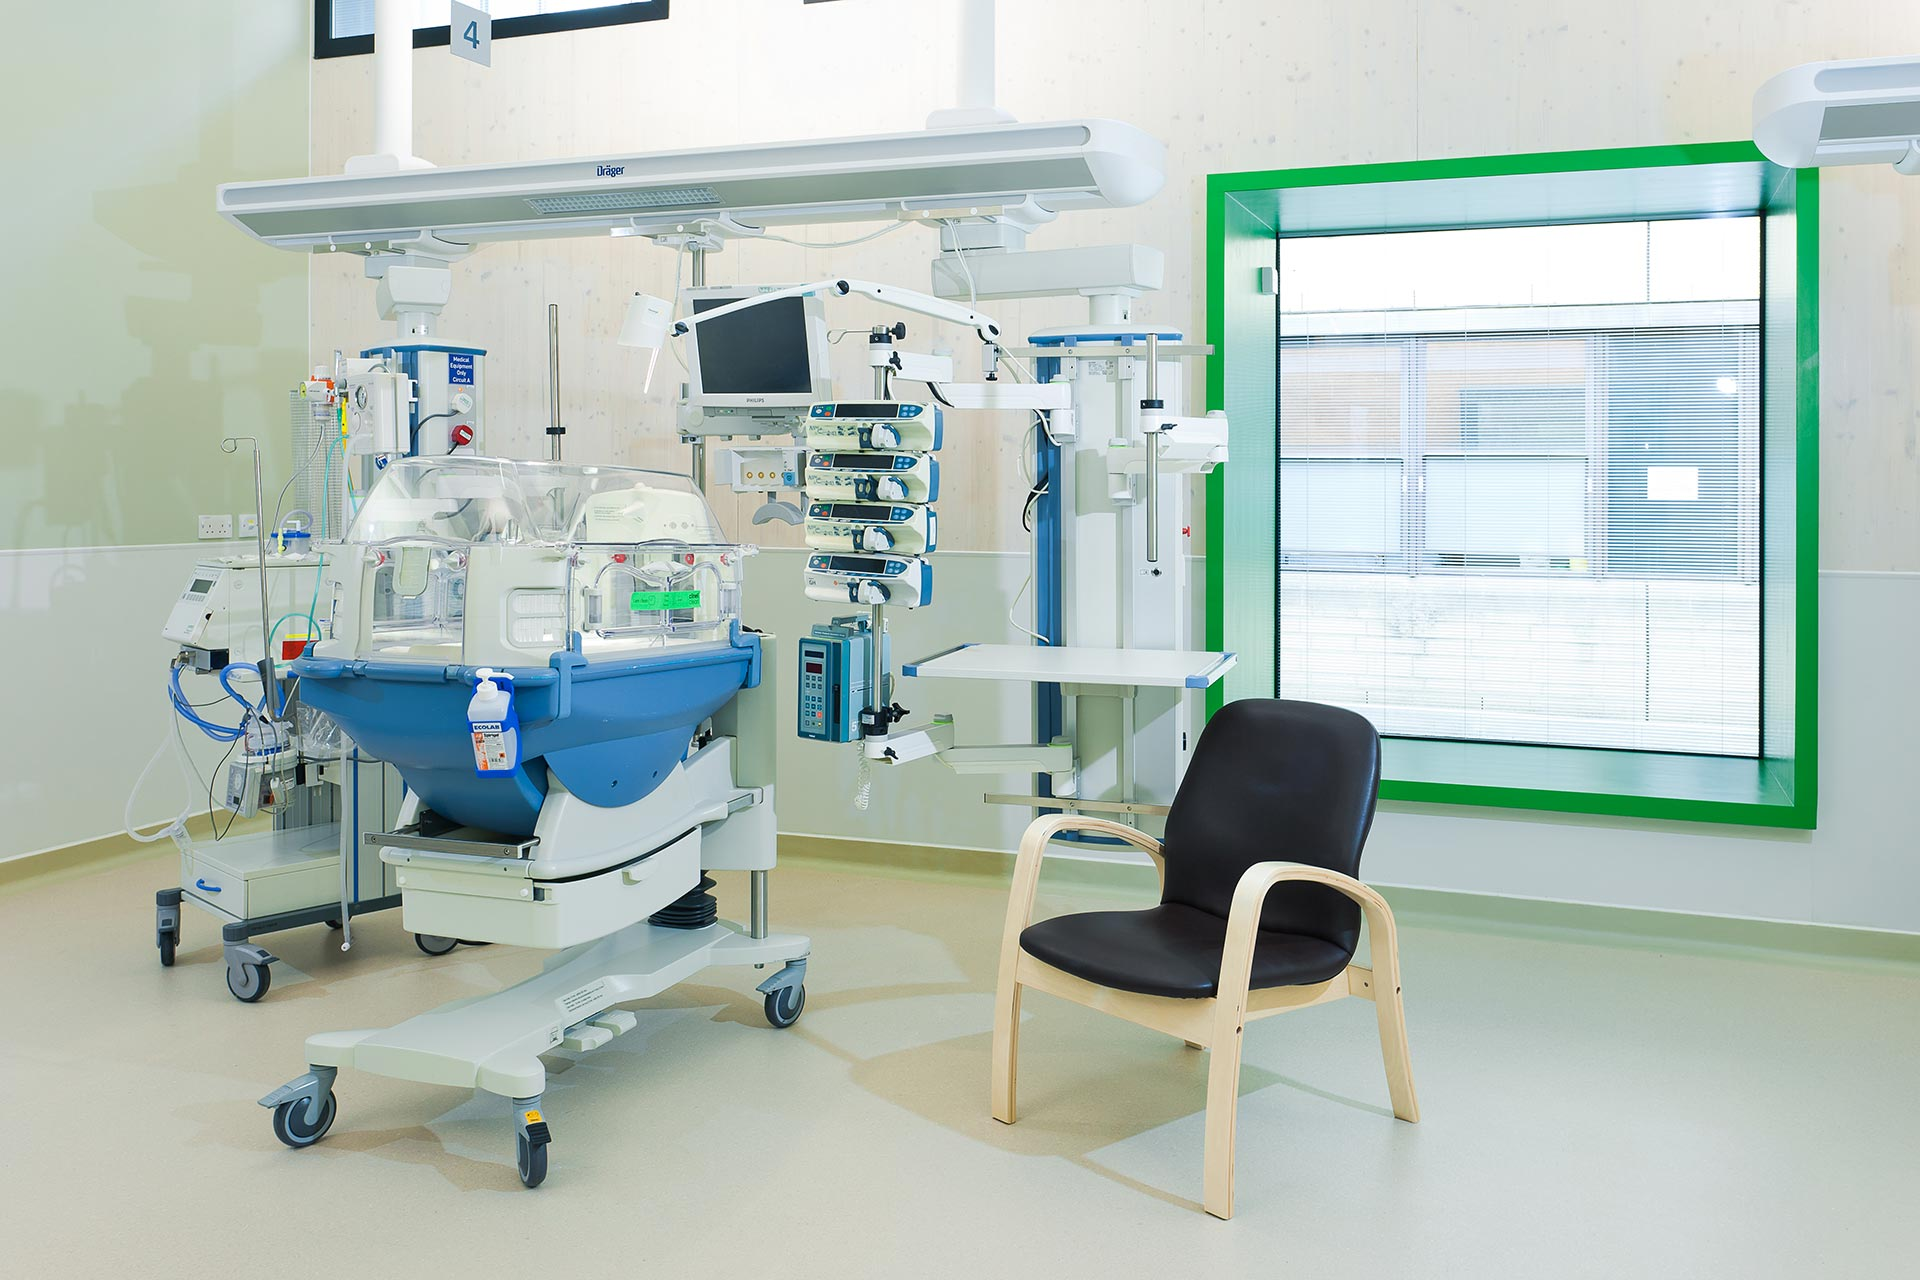 Colourful window frames to make clinical environment more welcoming